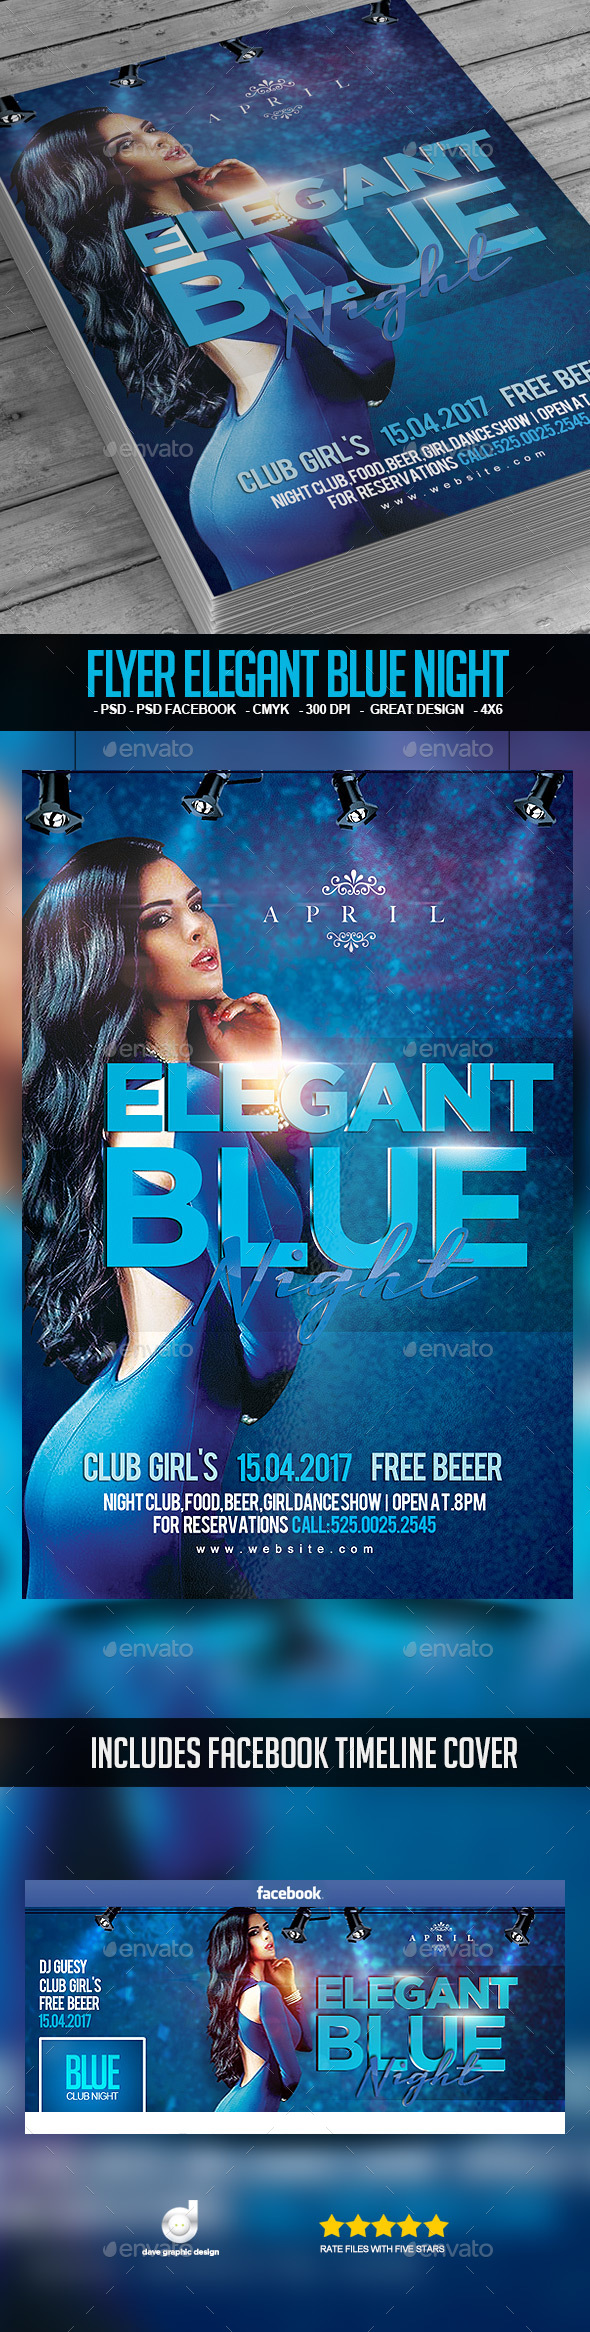 Flyer Elegant Blue Night - Clubs & Parties Events